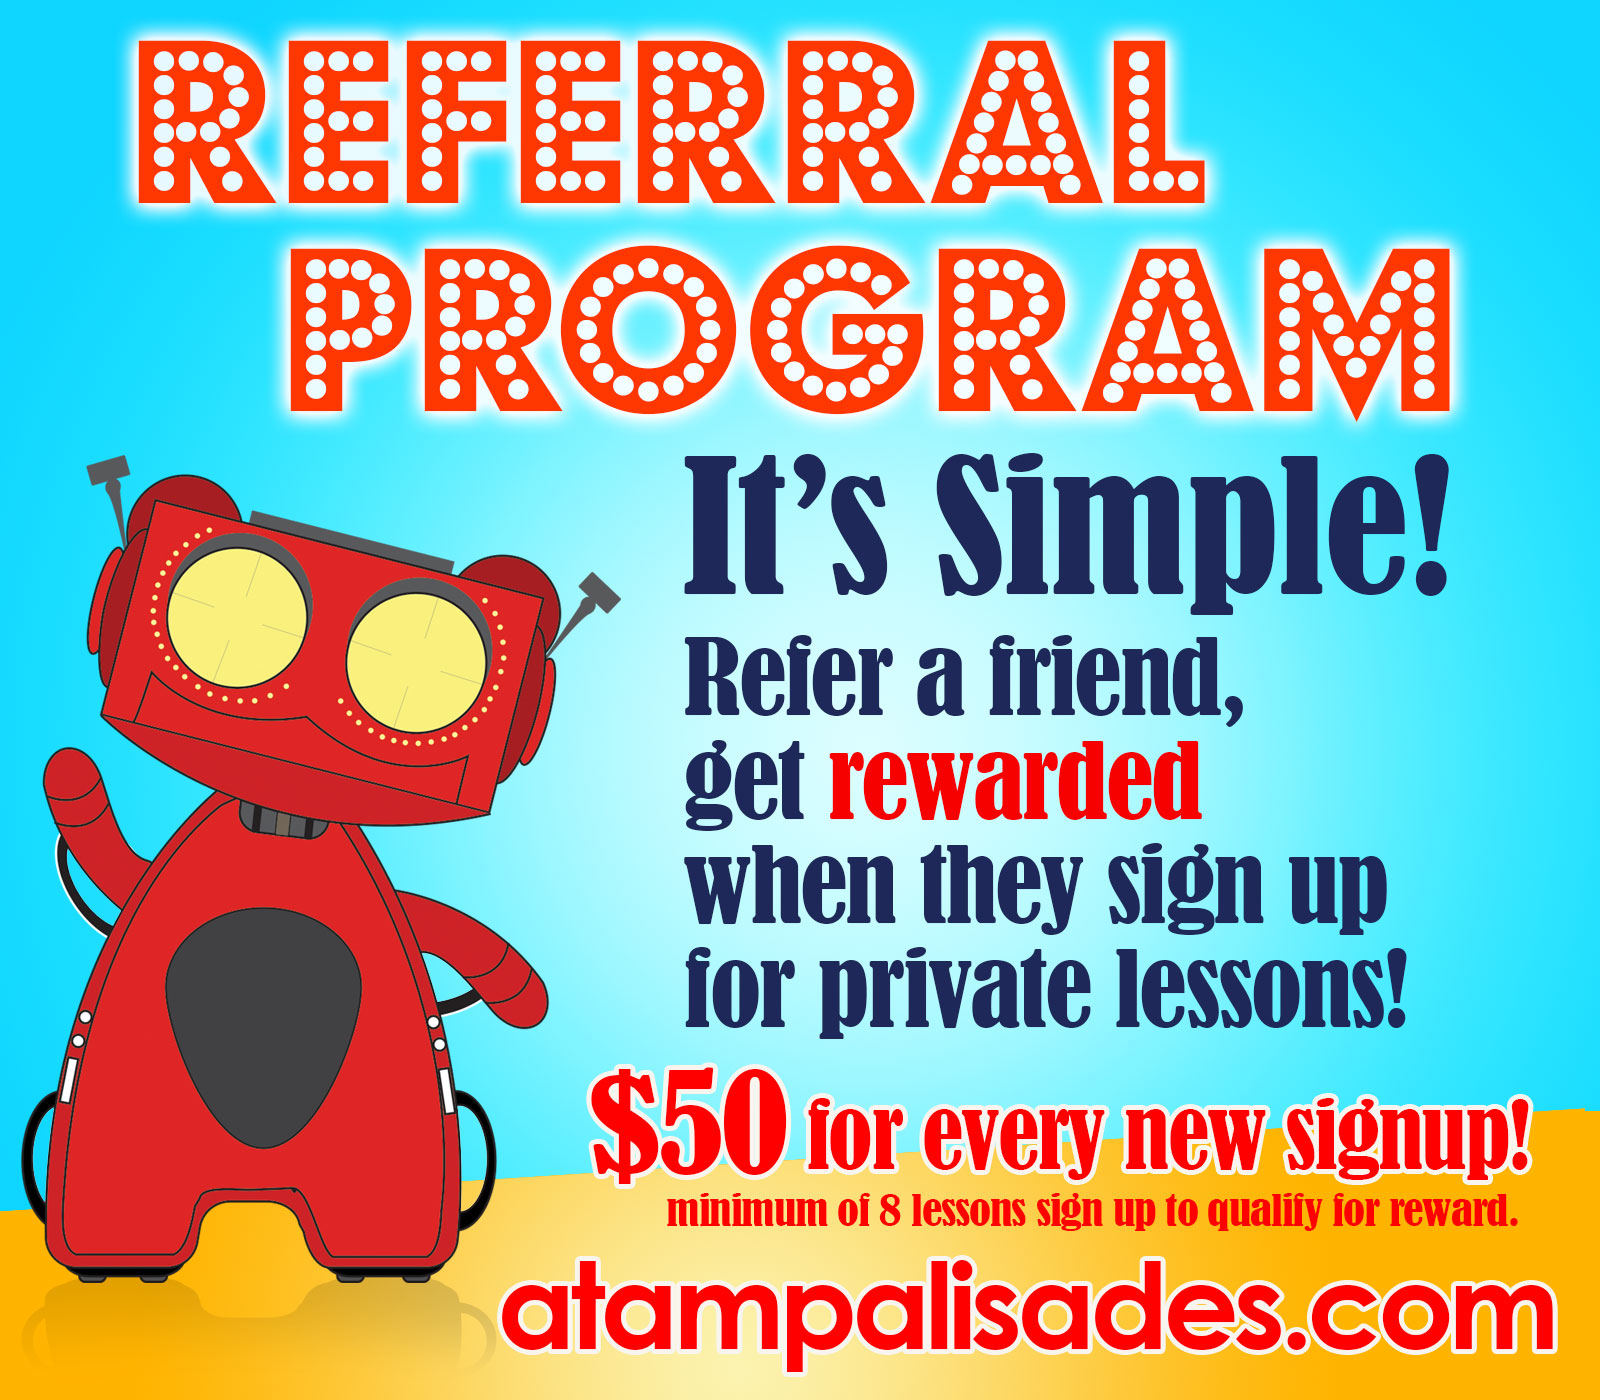 ATAM-referral-promo.jpg